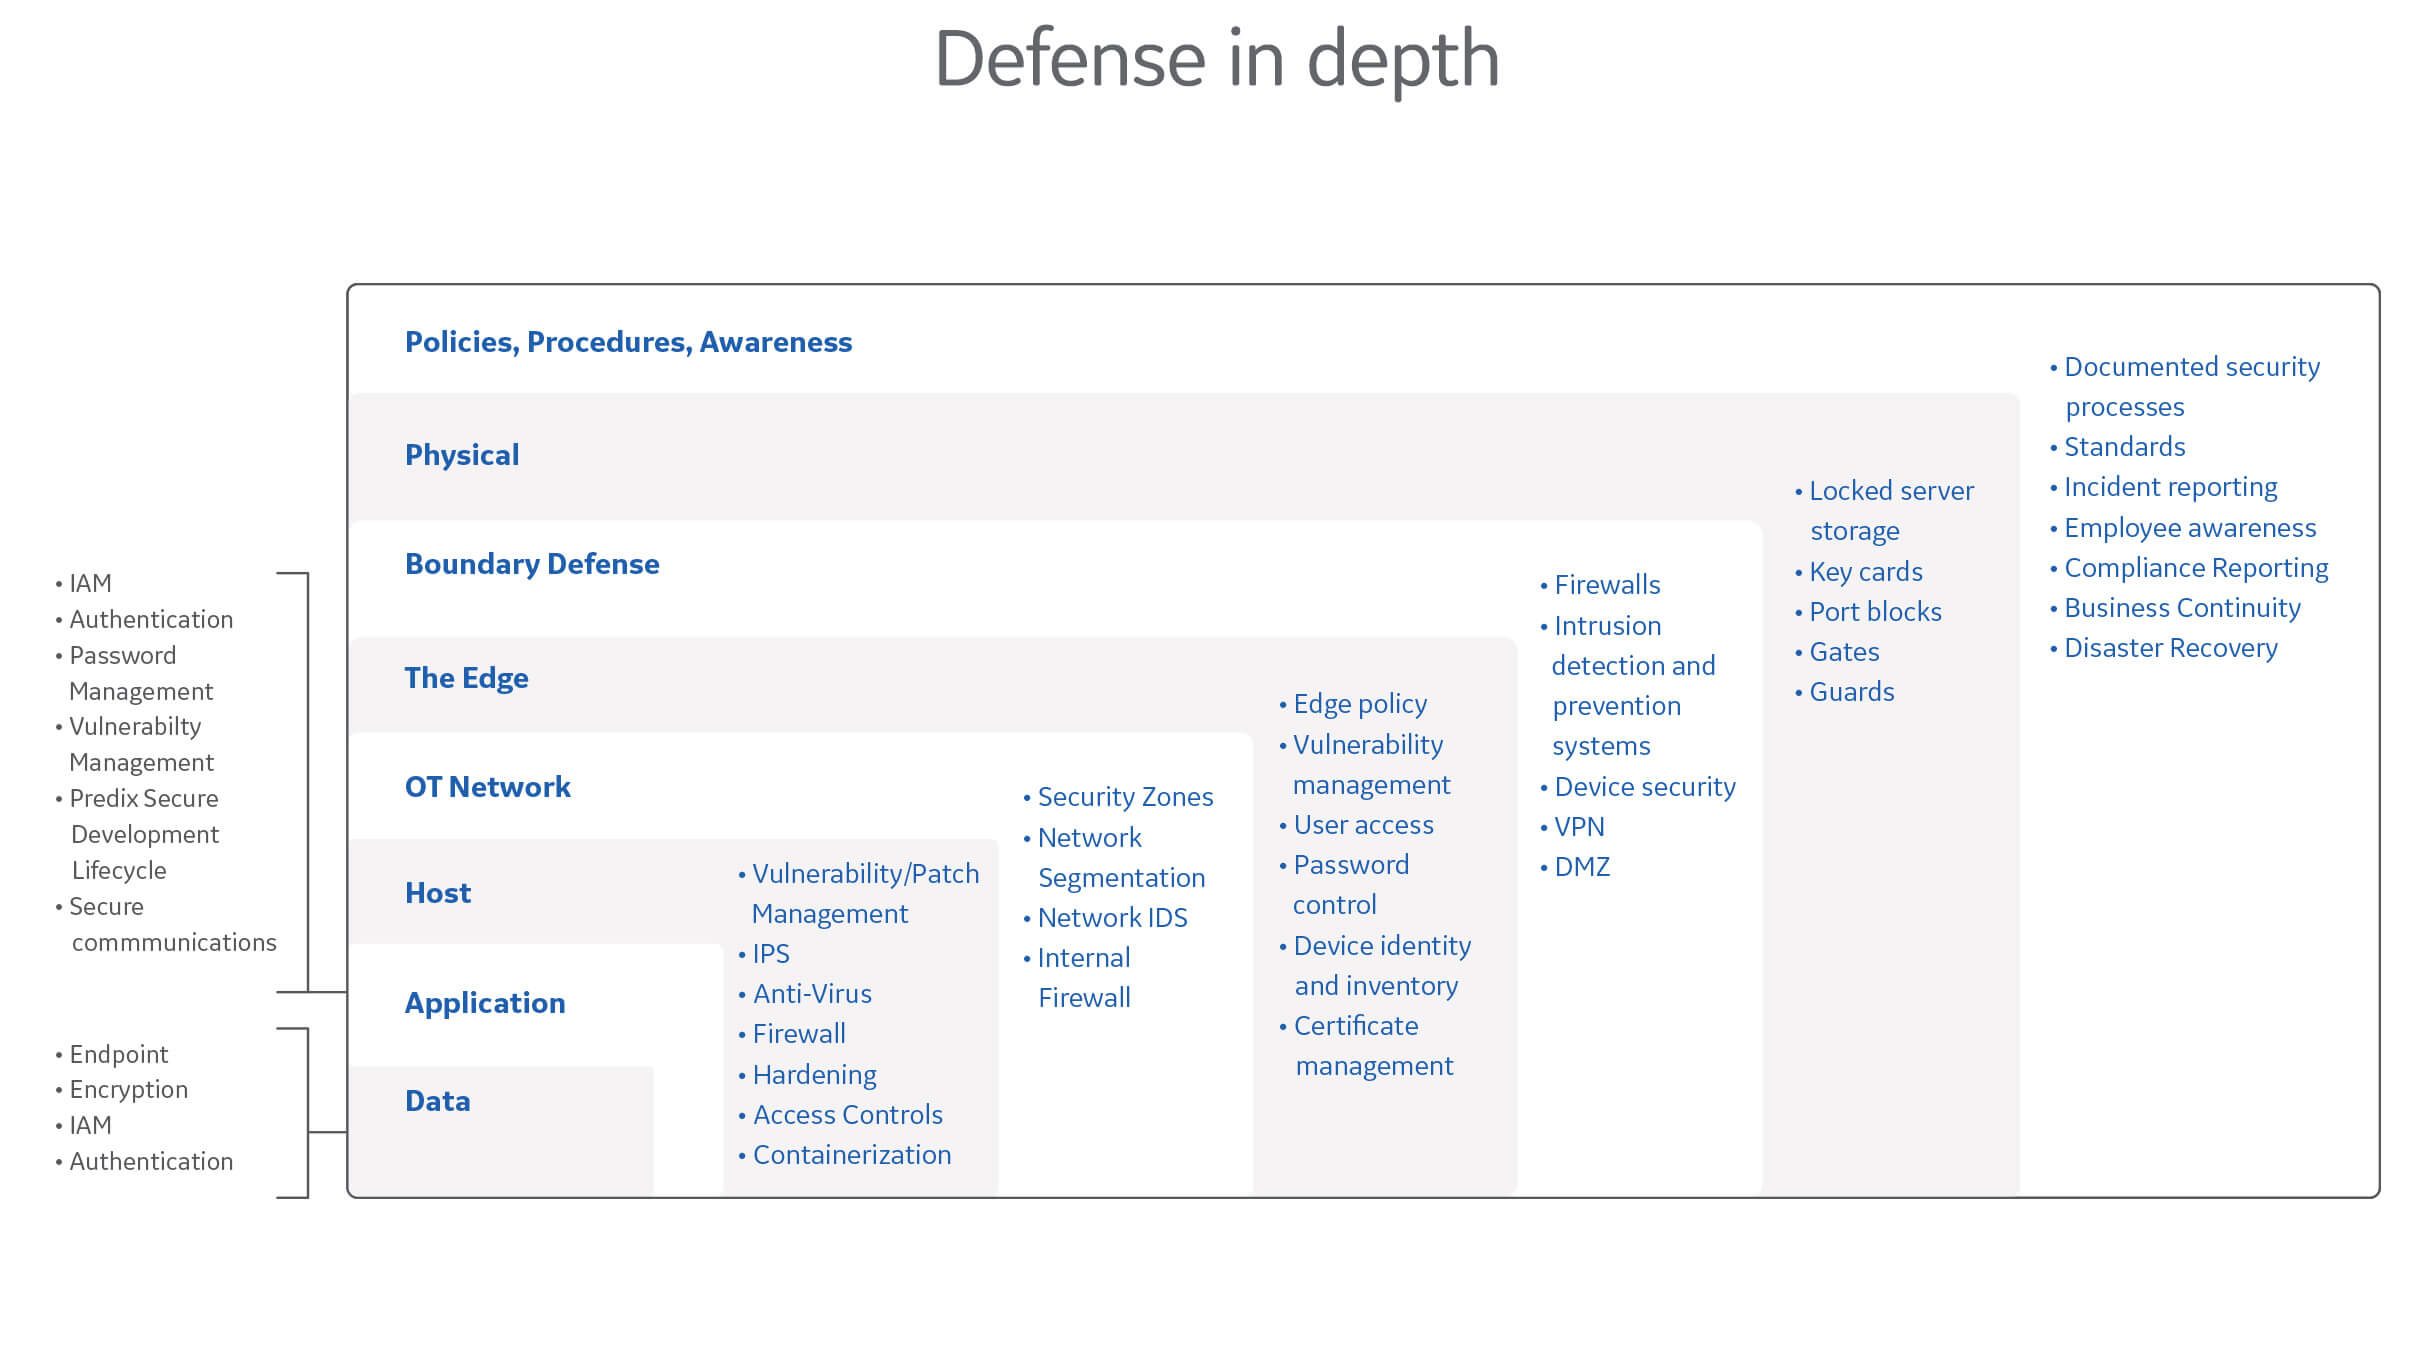 module security chart defense in defense